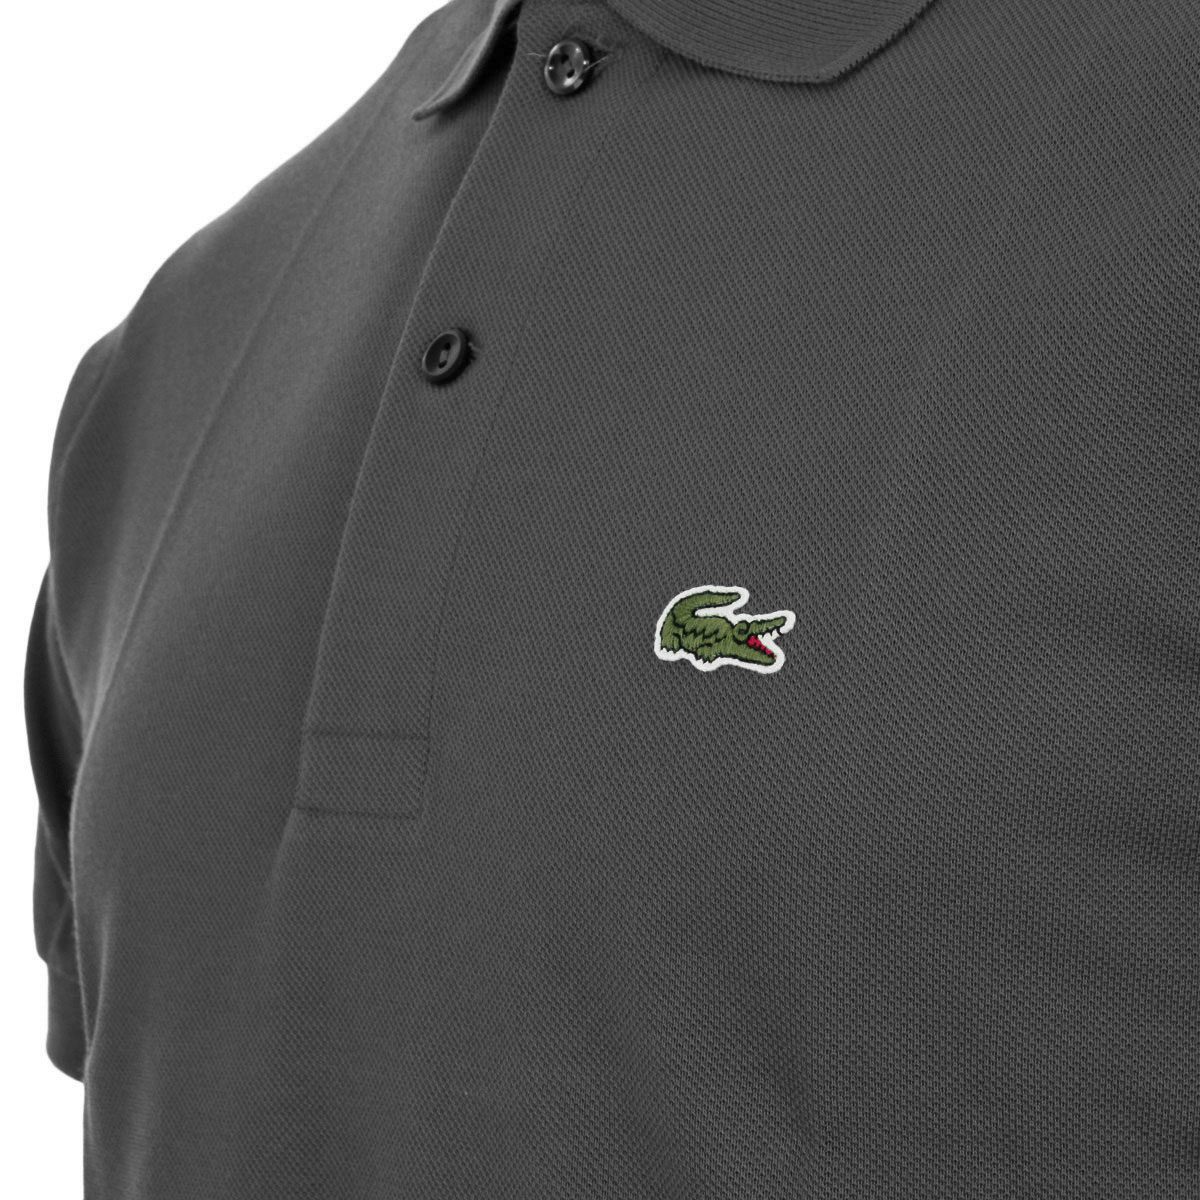 Lacoste-Mens-Classic-Cotton-L1212-Short-Sleeve-Polo-Shirt-31-OFF-RRP thumbnail 34